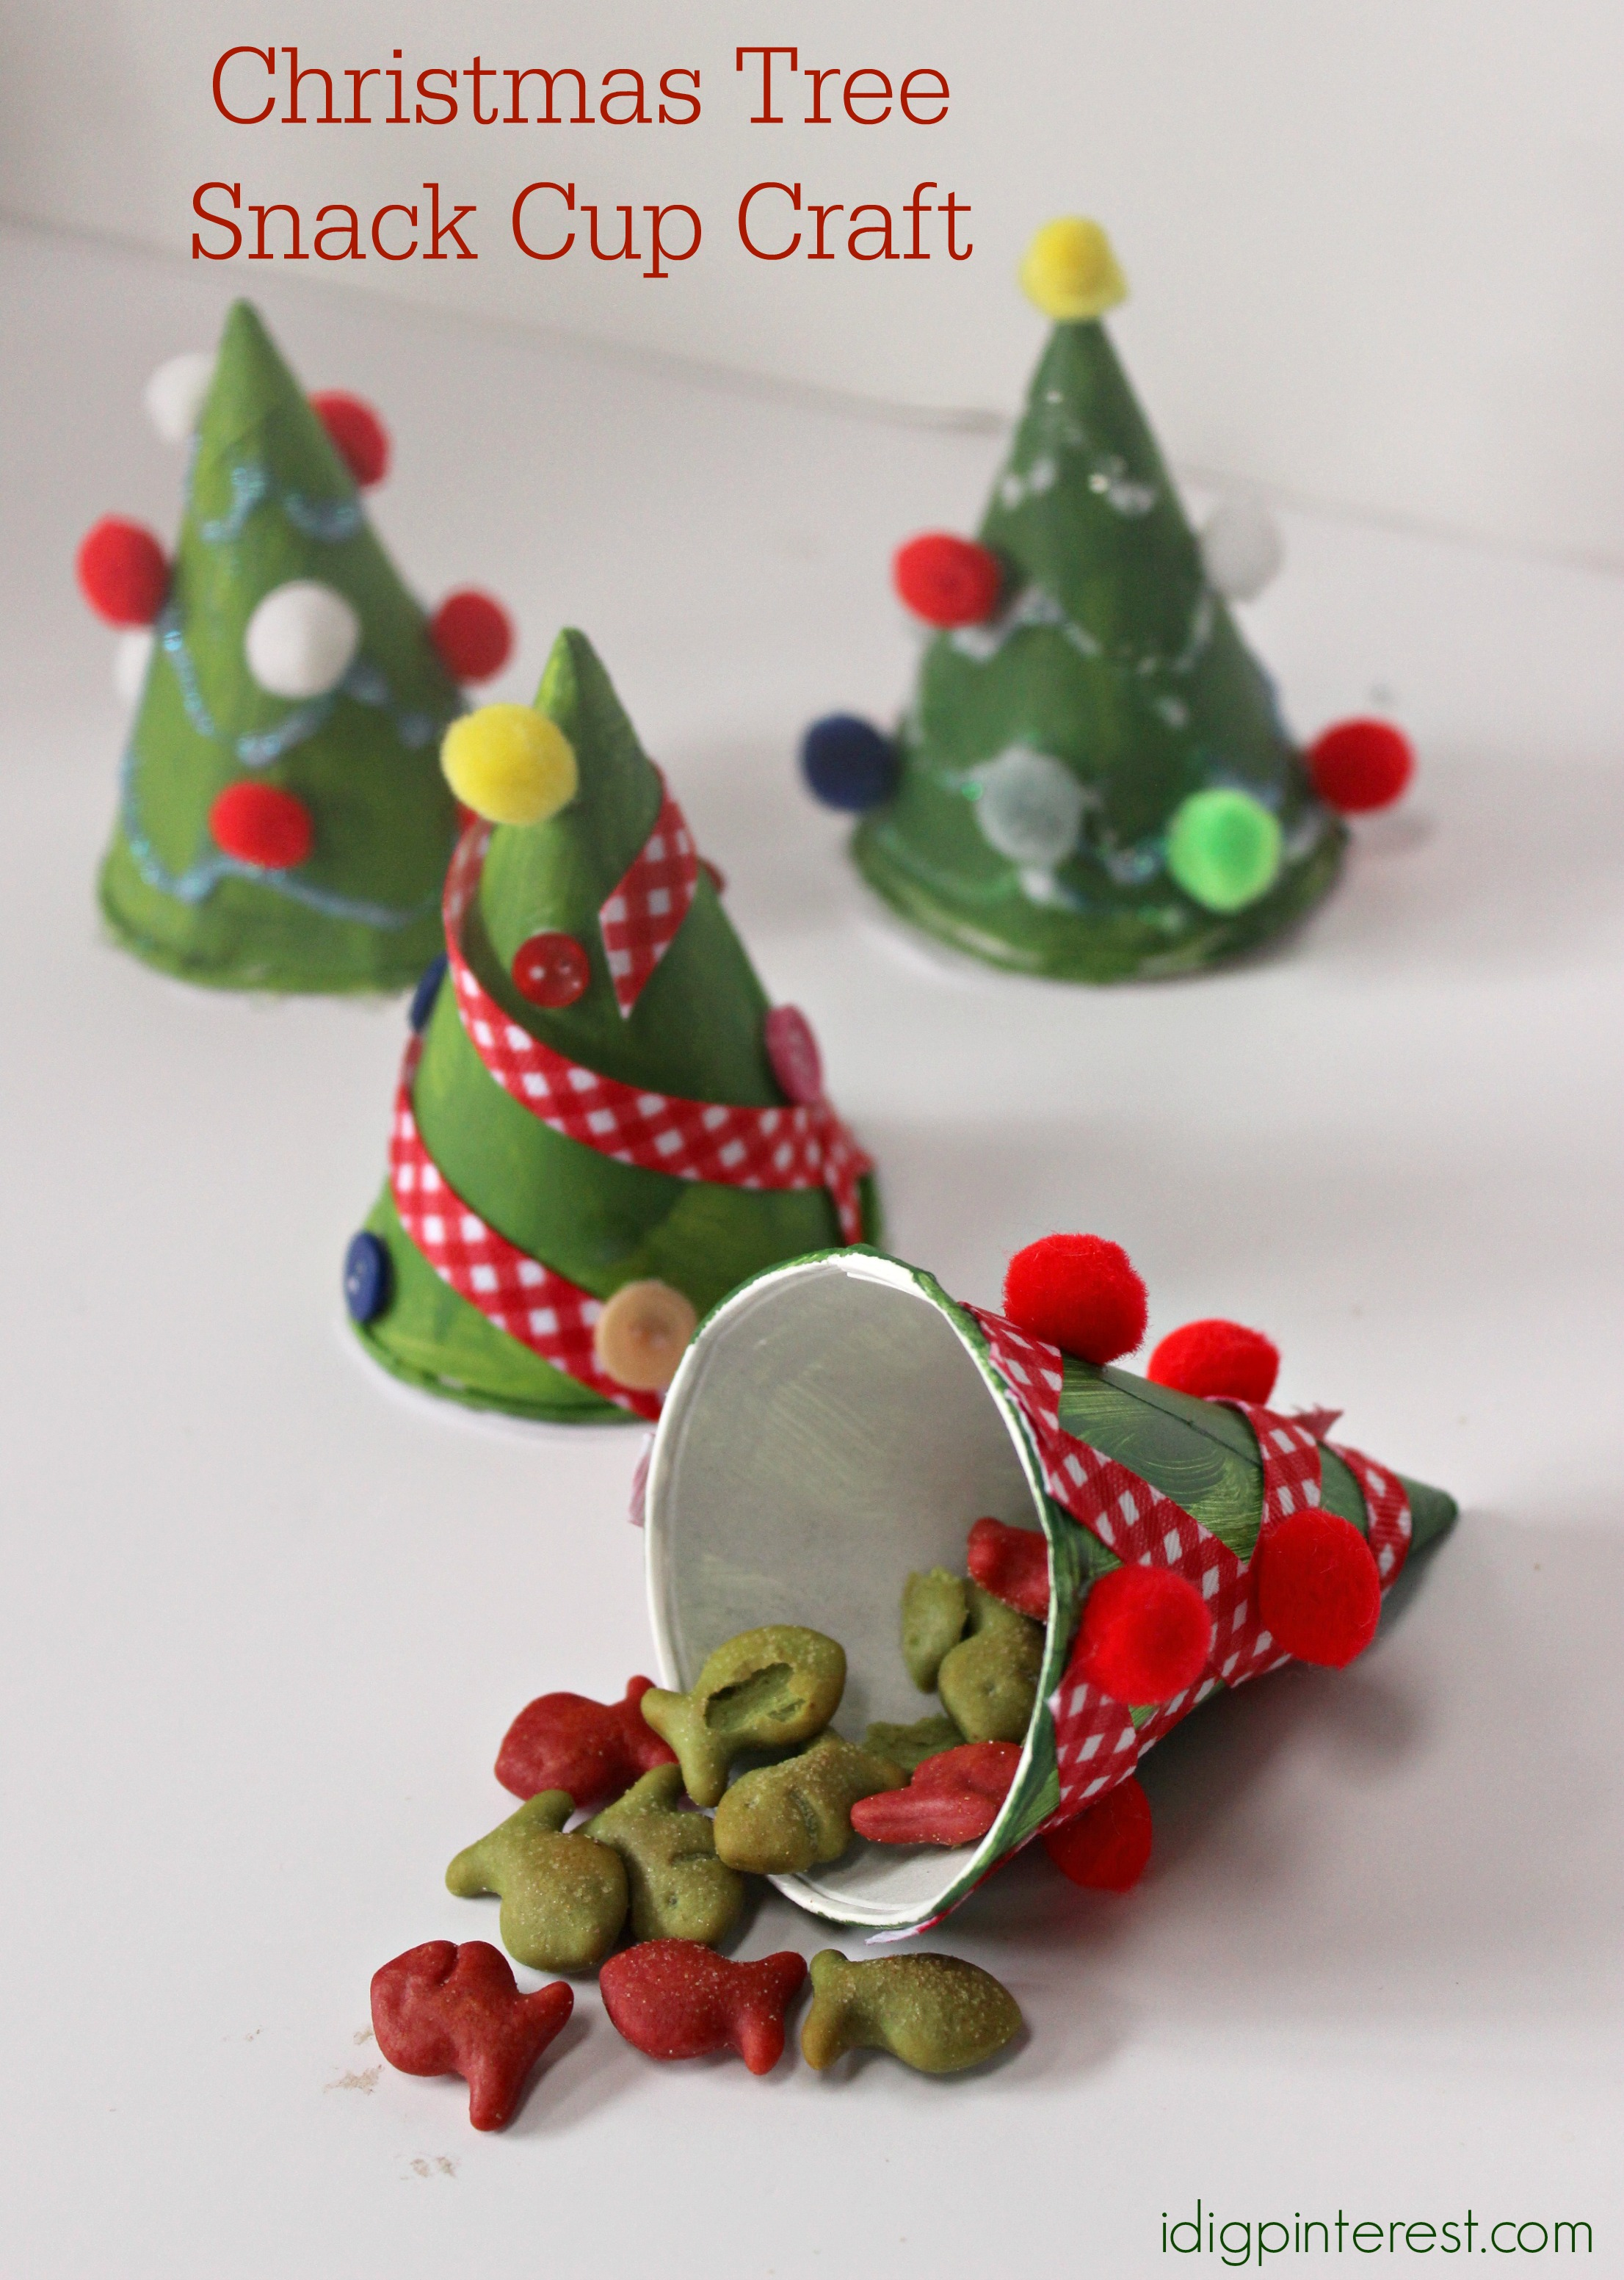 Christmas Tree Snack Cup Craft - I Dig Pinterest